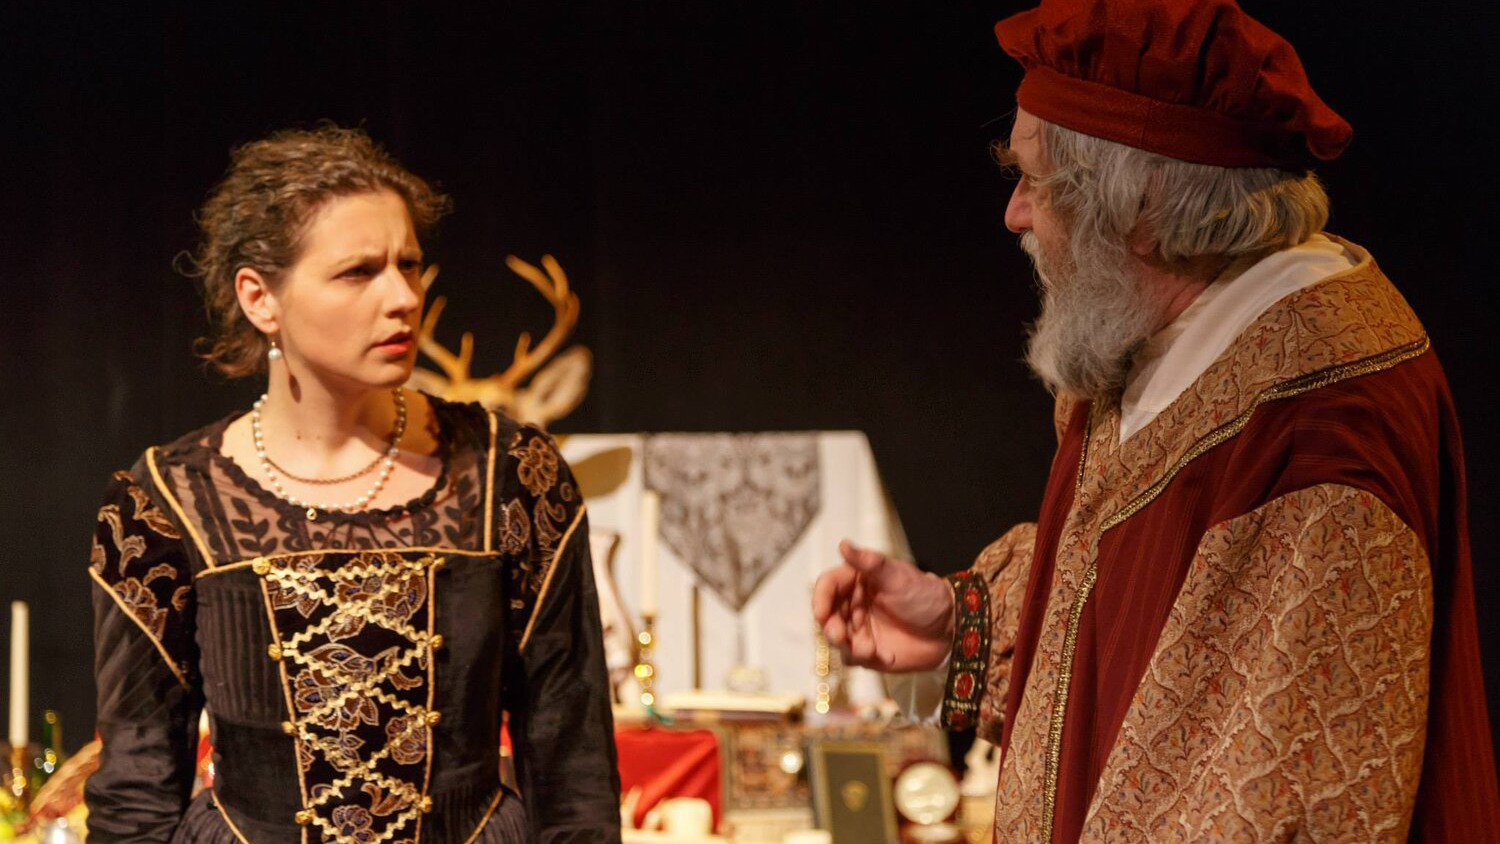 Two actors perform in Richard II. One woman in a black and gold dress looks at a man whose back is to the camera.